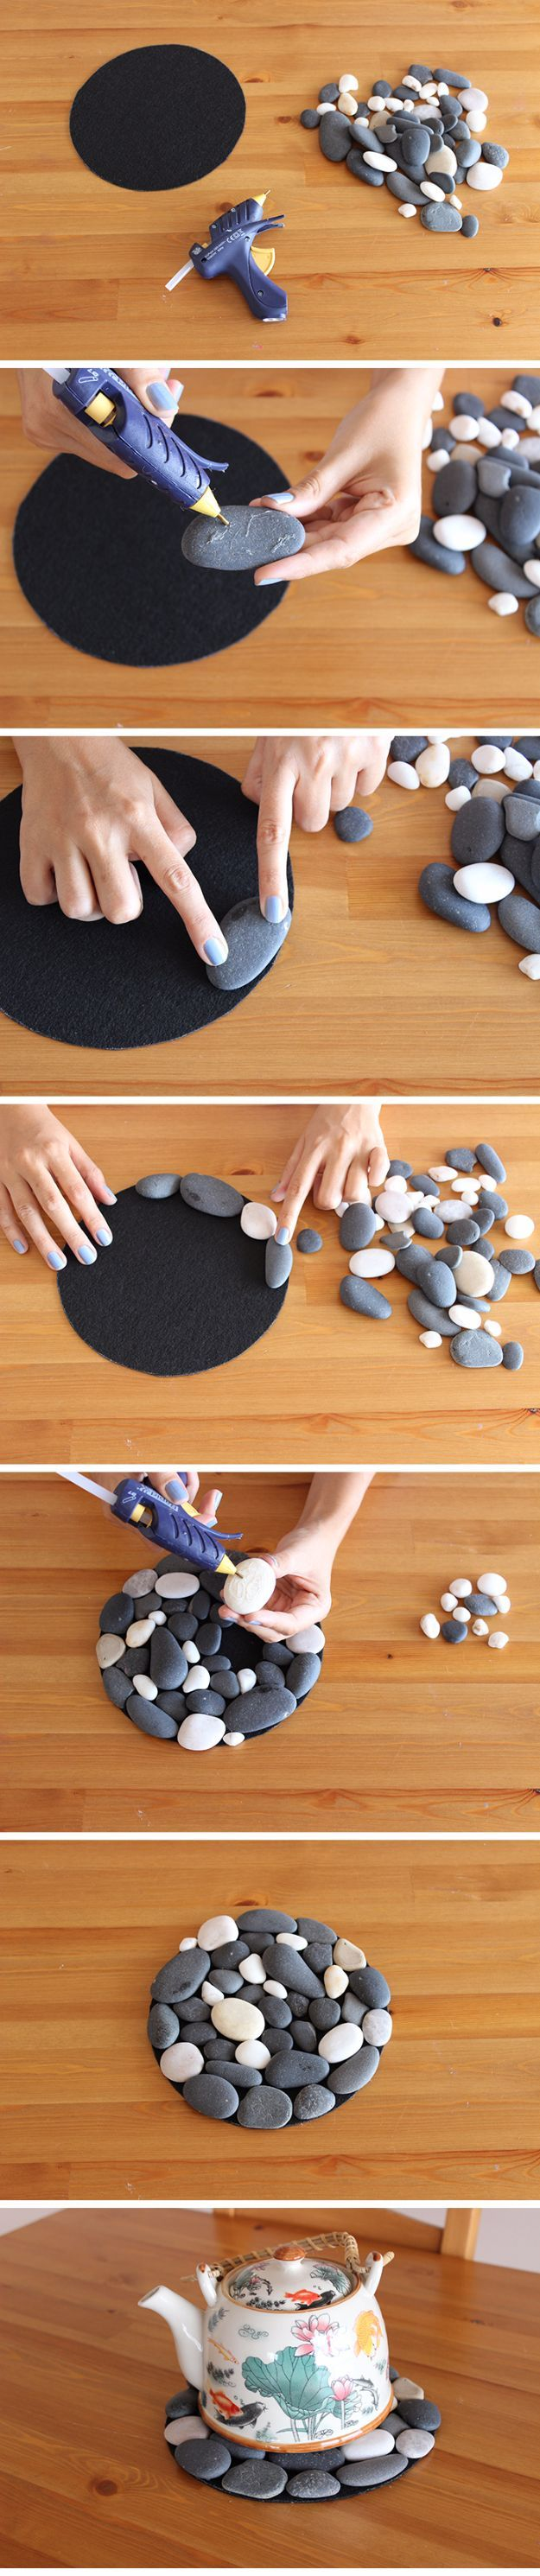 Pebble and Stone Crafts – Pebble Coasters – DIY Concepts Utilizing Rocks, Stones and Pebble Artwork – Mosaics, …